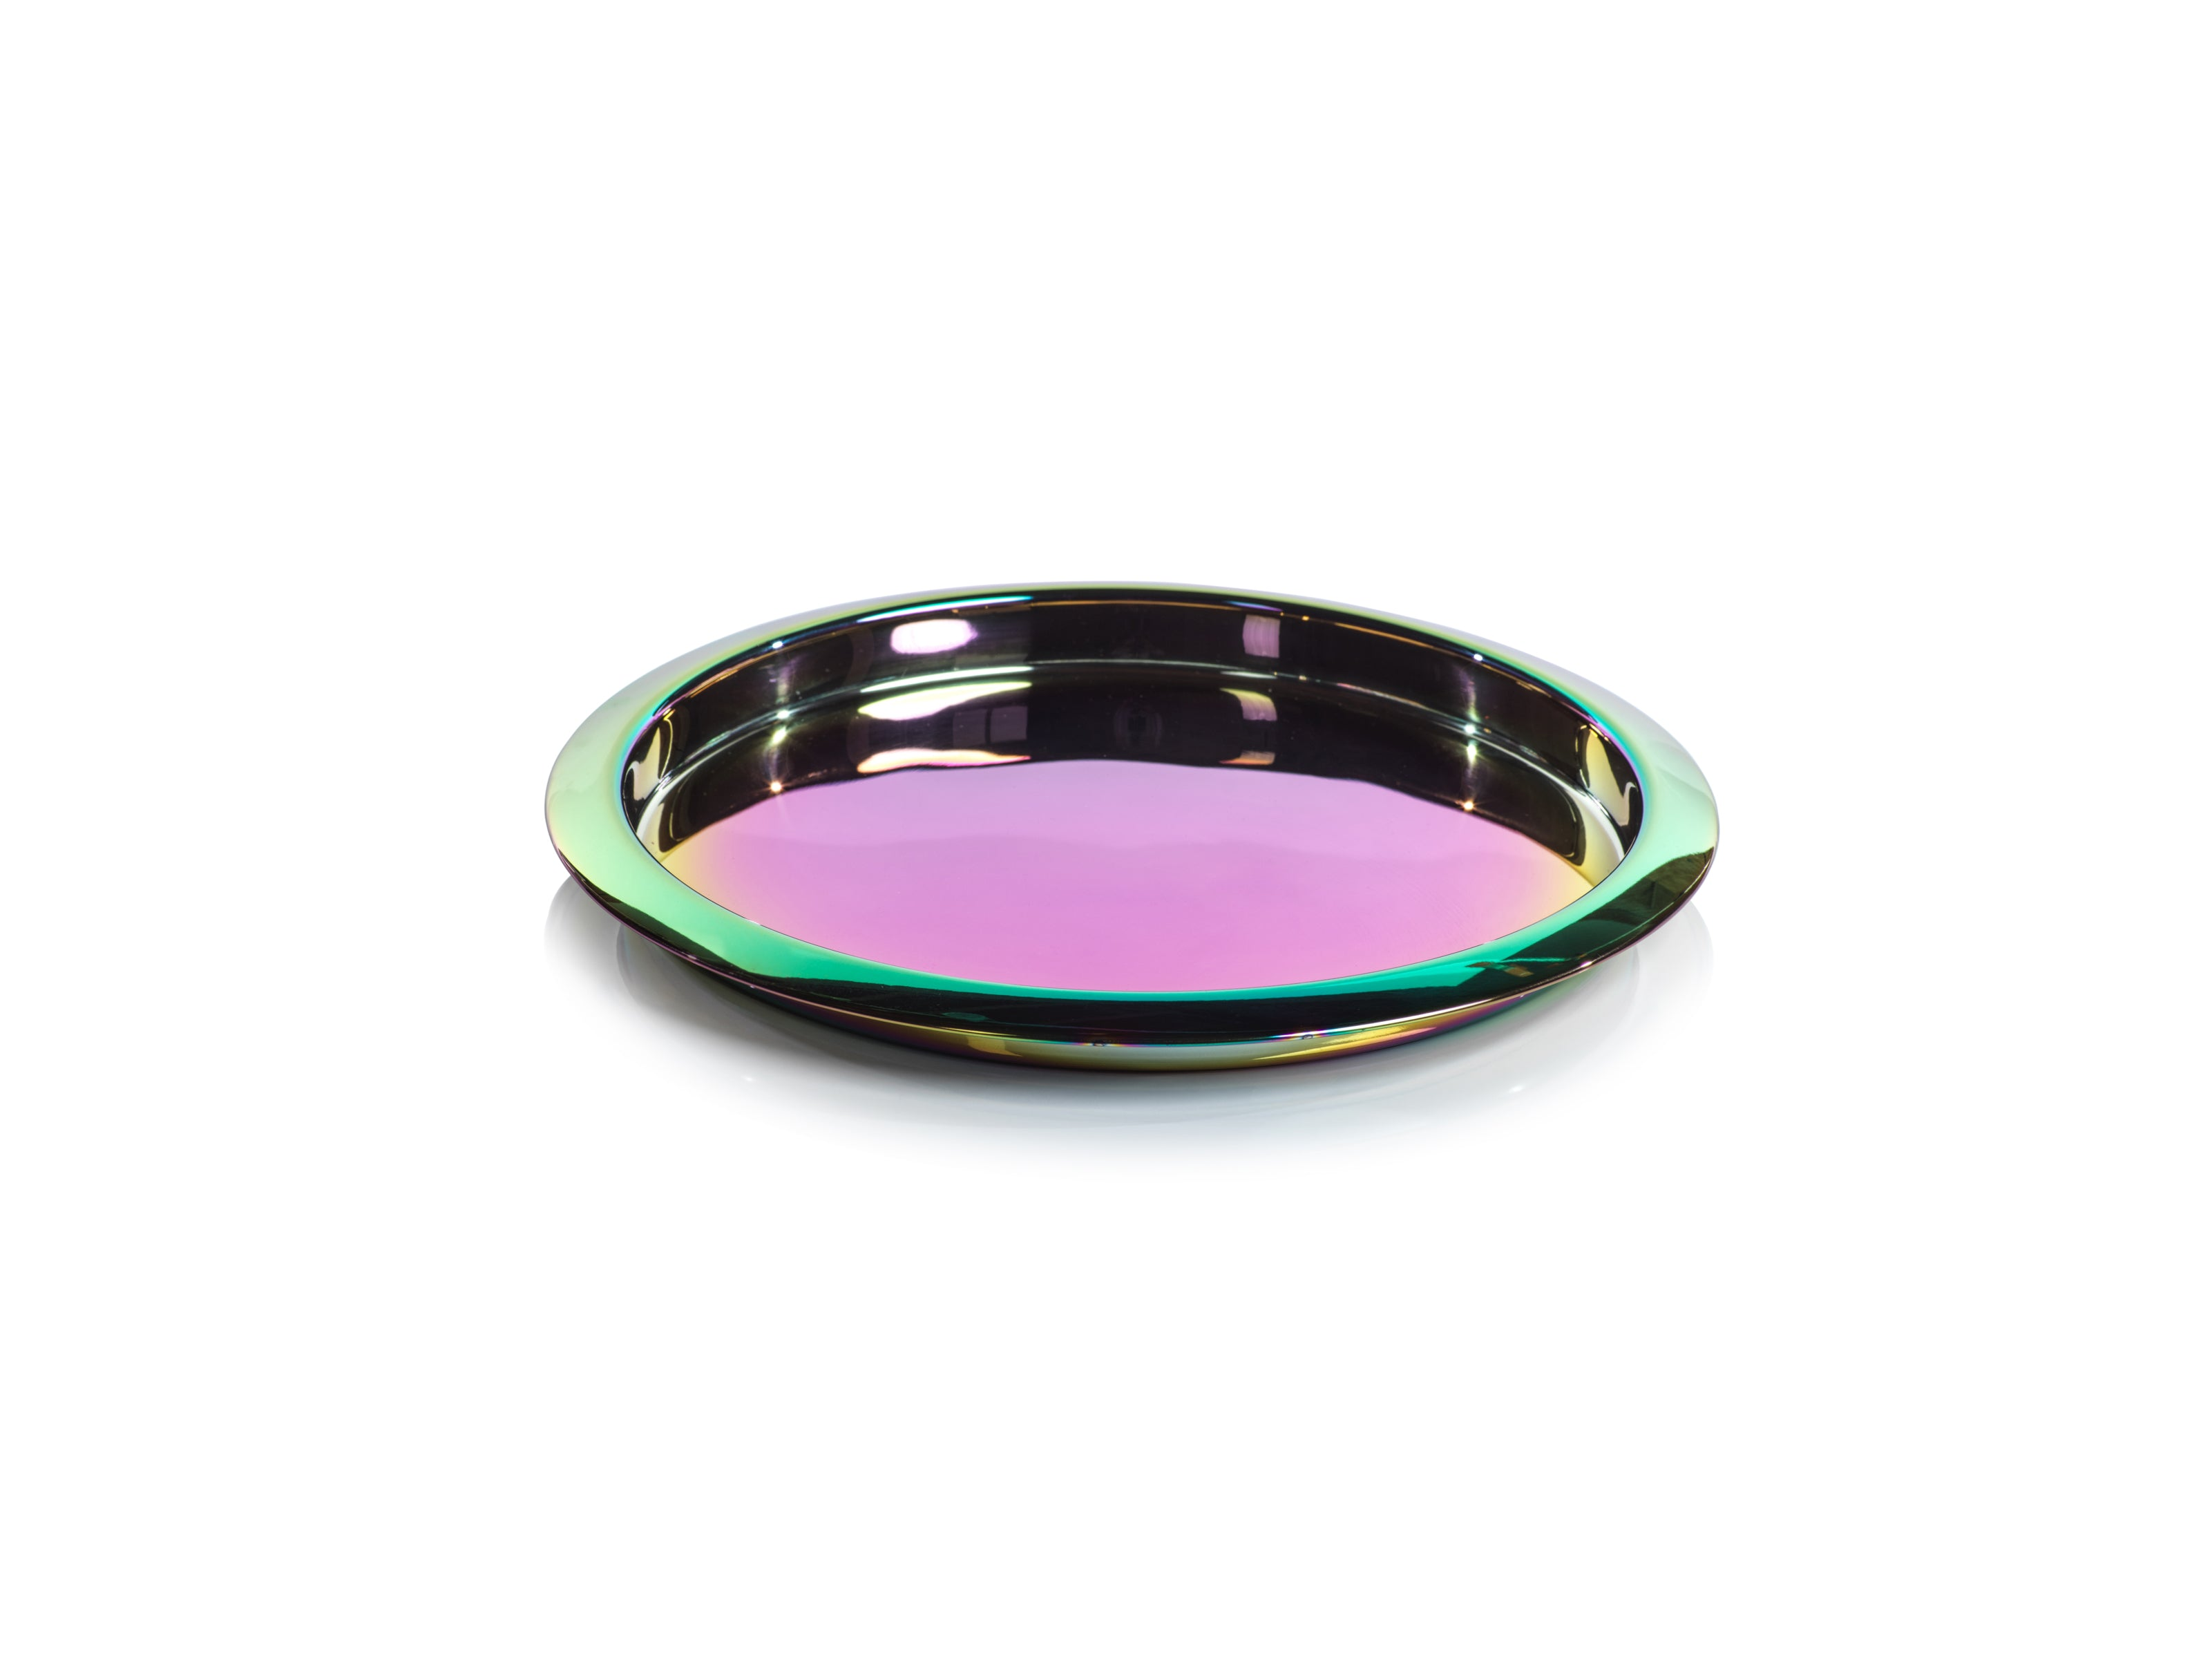 Stainless Steel Rainbow Round Serving Tray